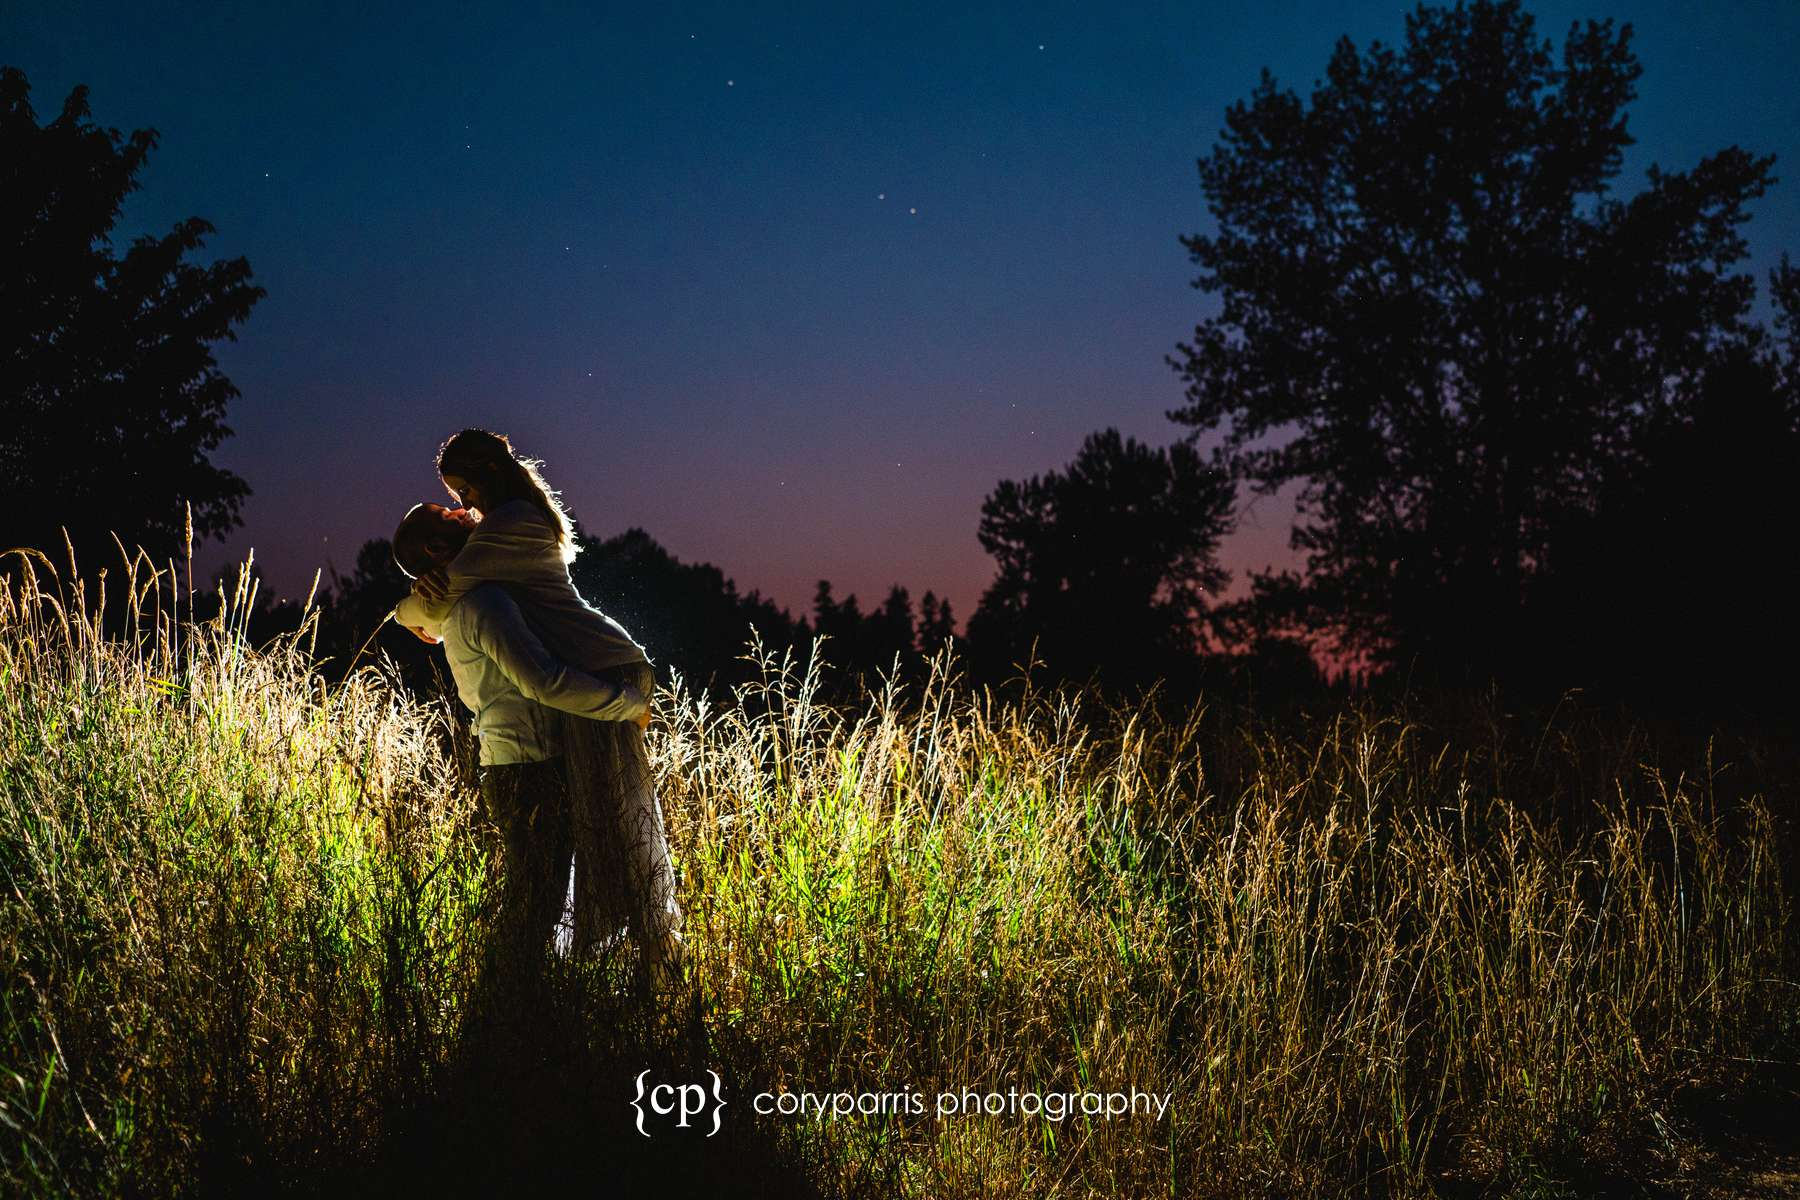 Klaudia and Justin's engagement portraits at Marrymoor Park in Redmond.